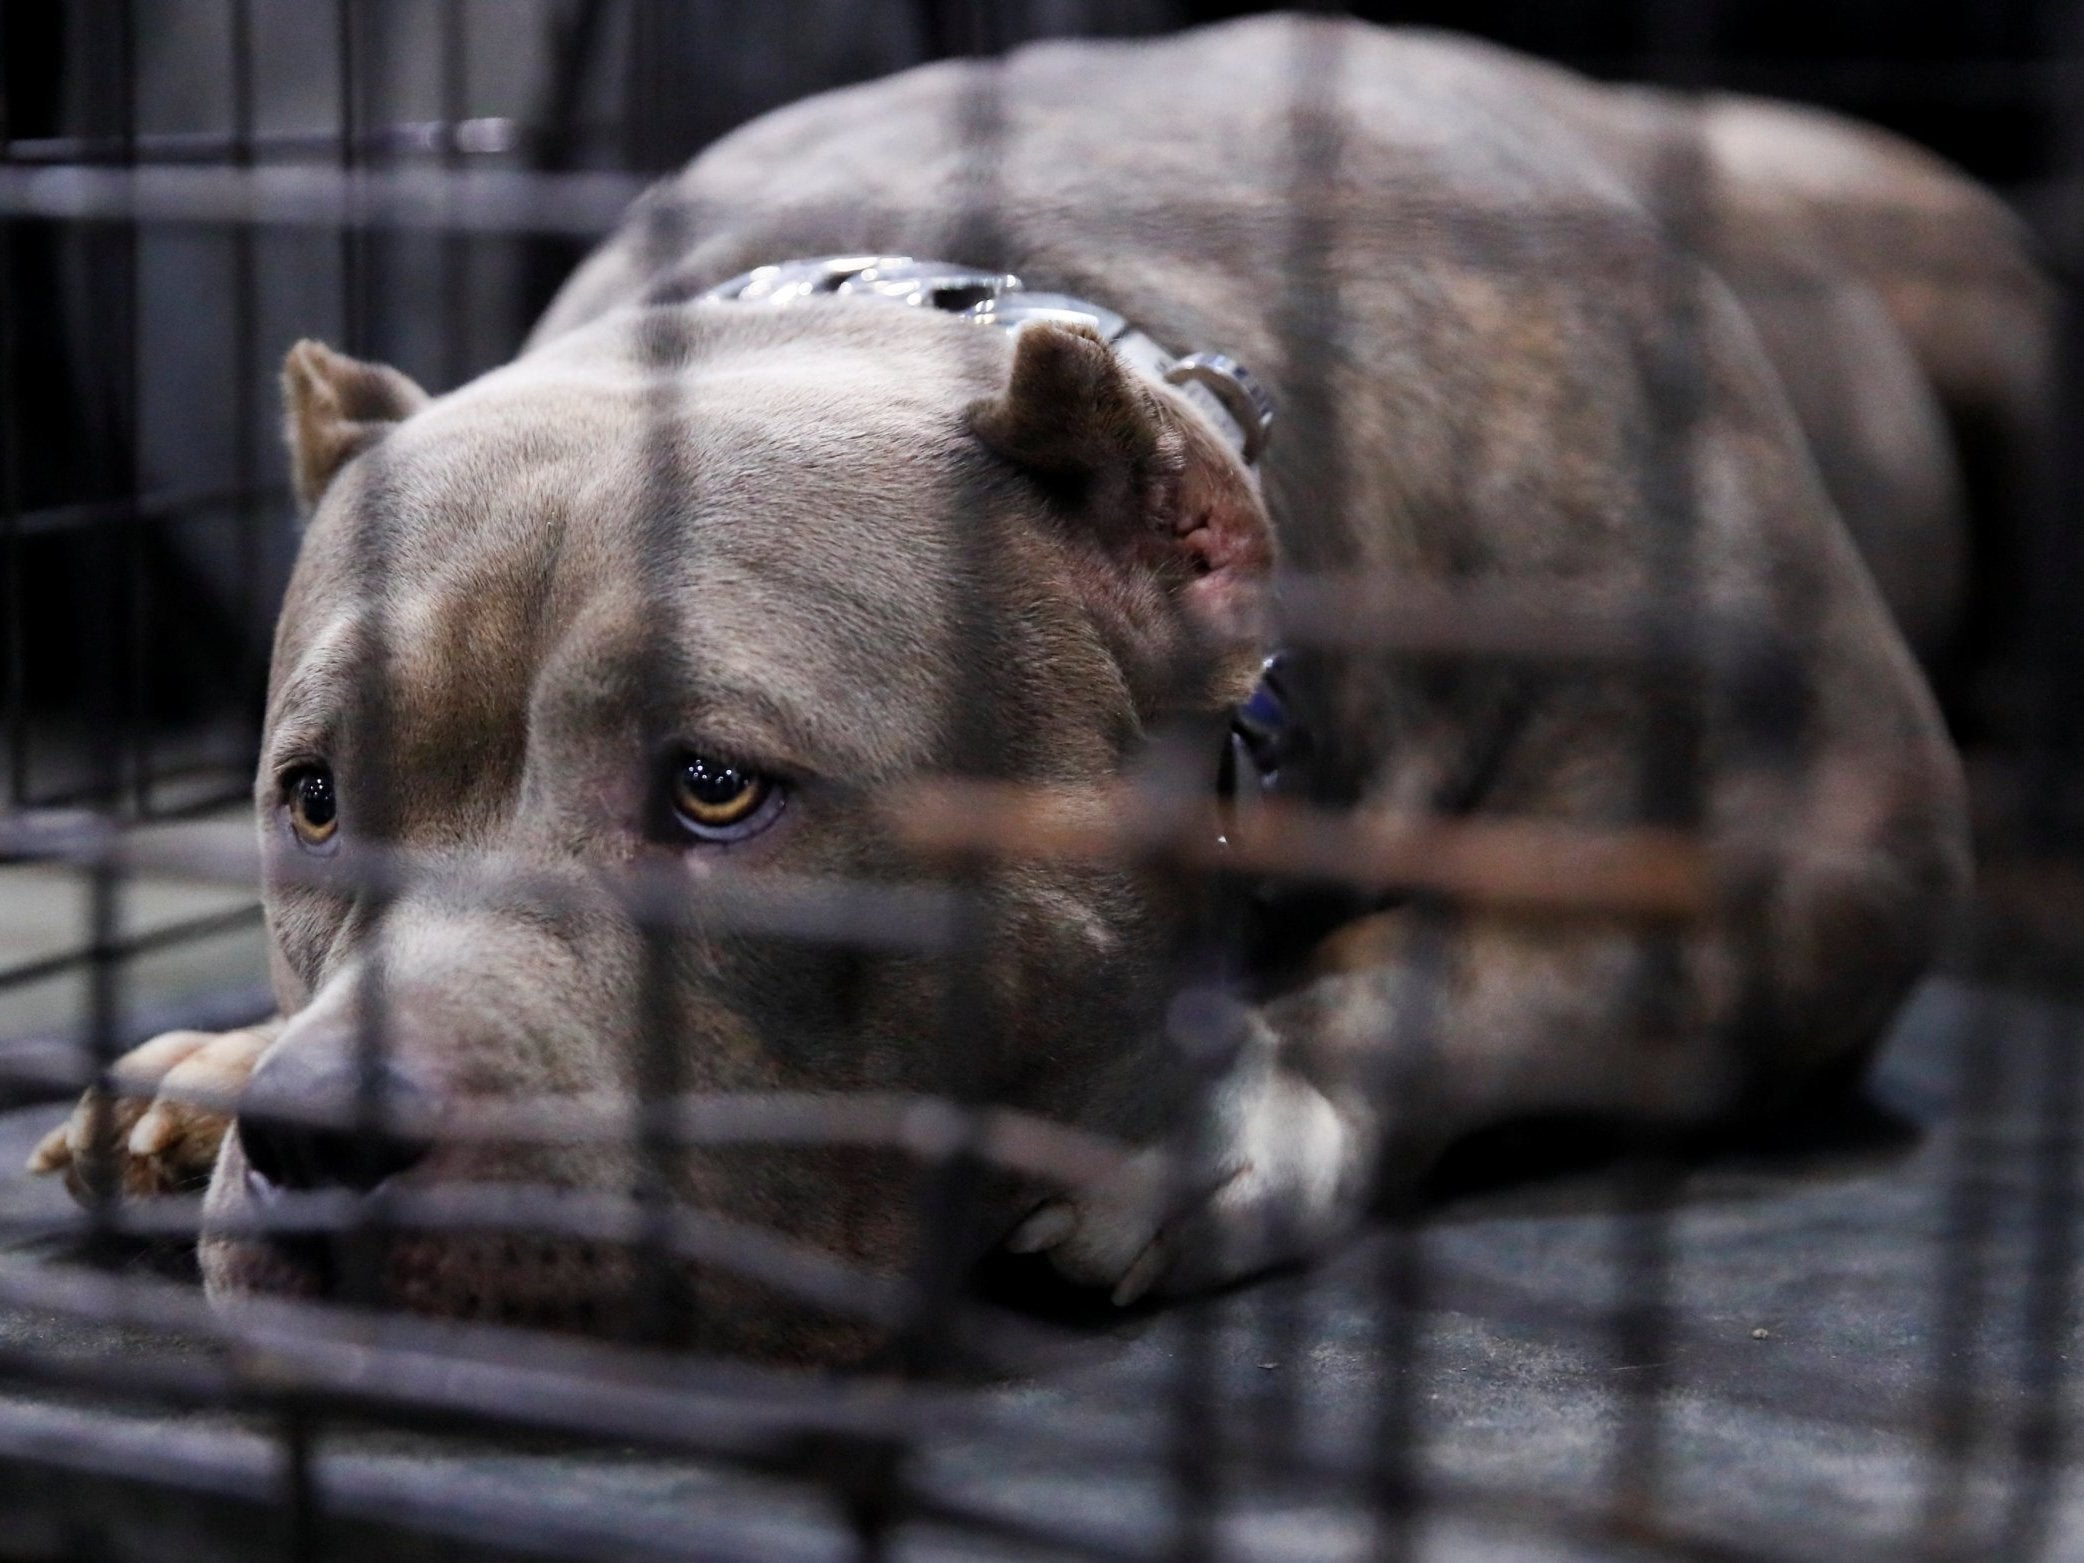 Watch VA says its resuming controversial medical experiments on dogs video